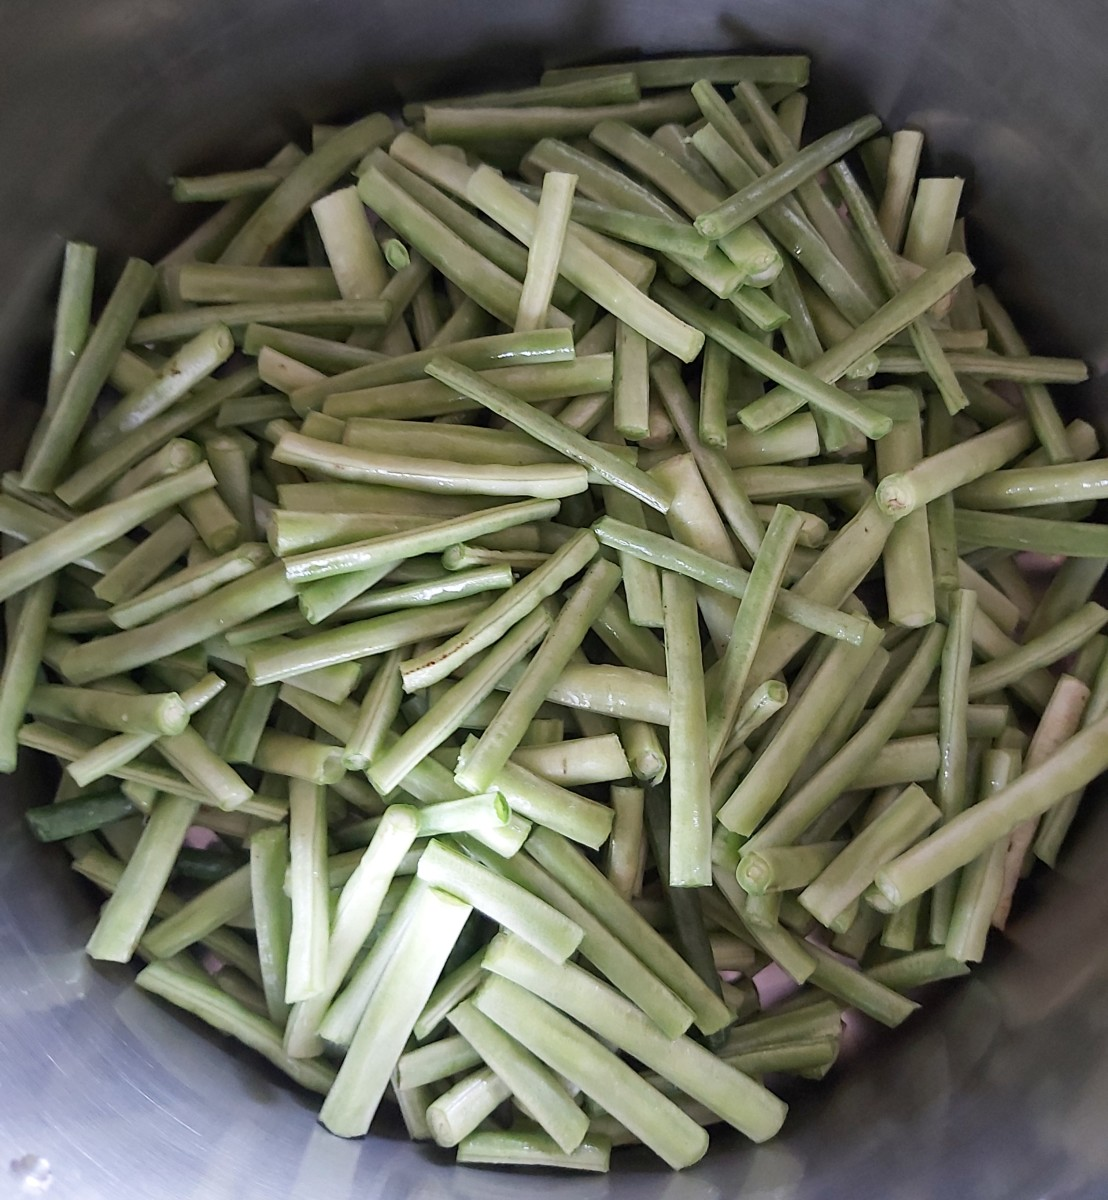 Chop the long beans into 1- to 2-inch-long pieces.